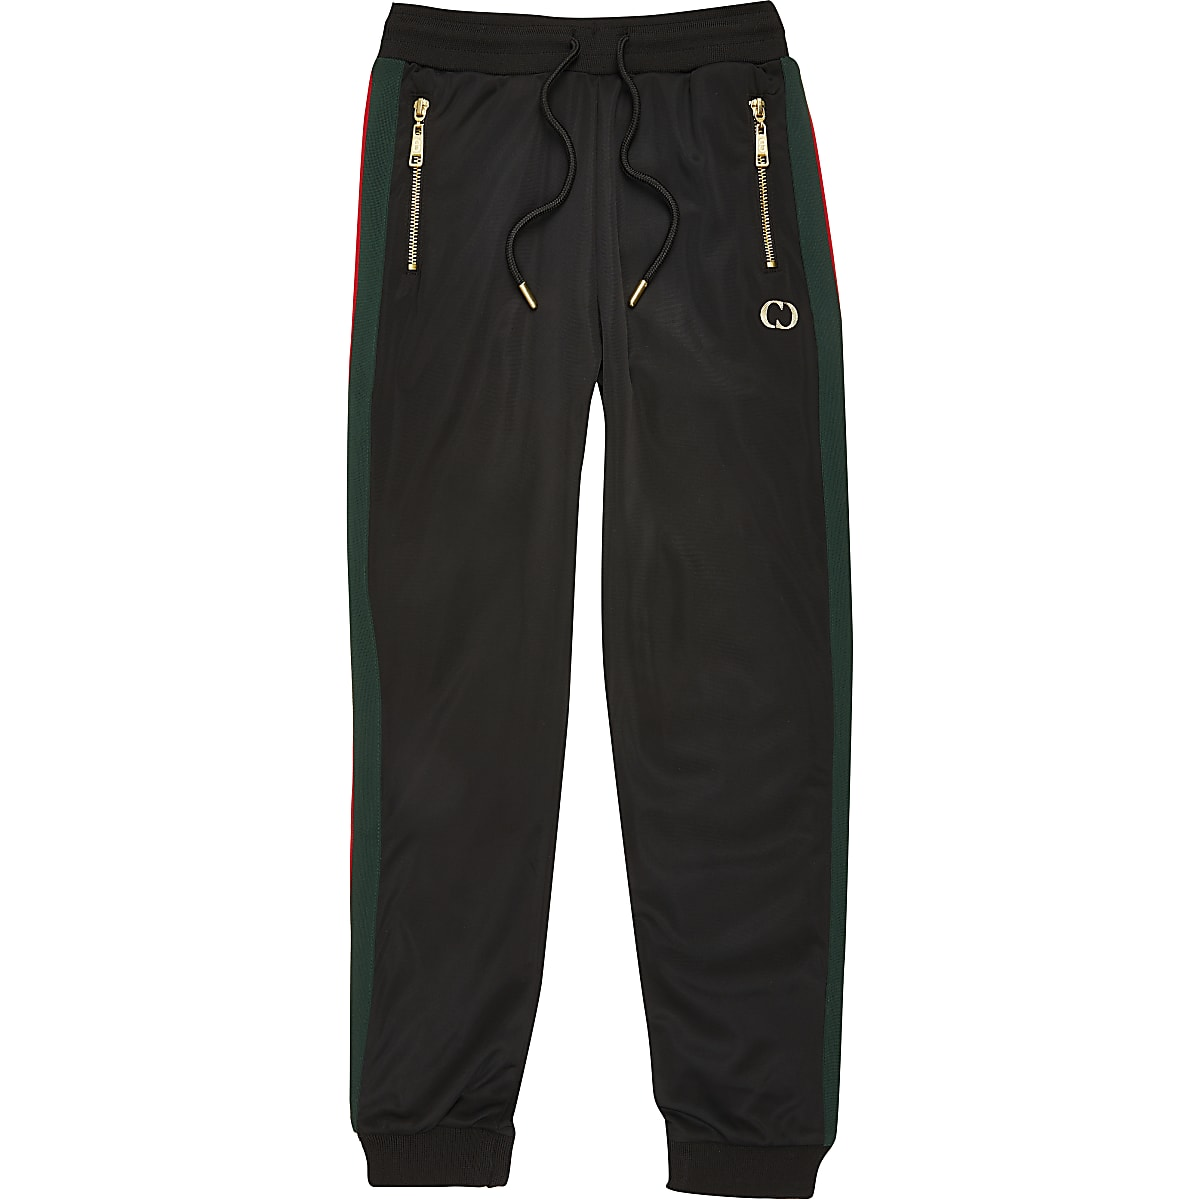 Boys Criminal Damage black stripe joggers